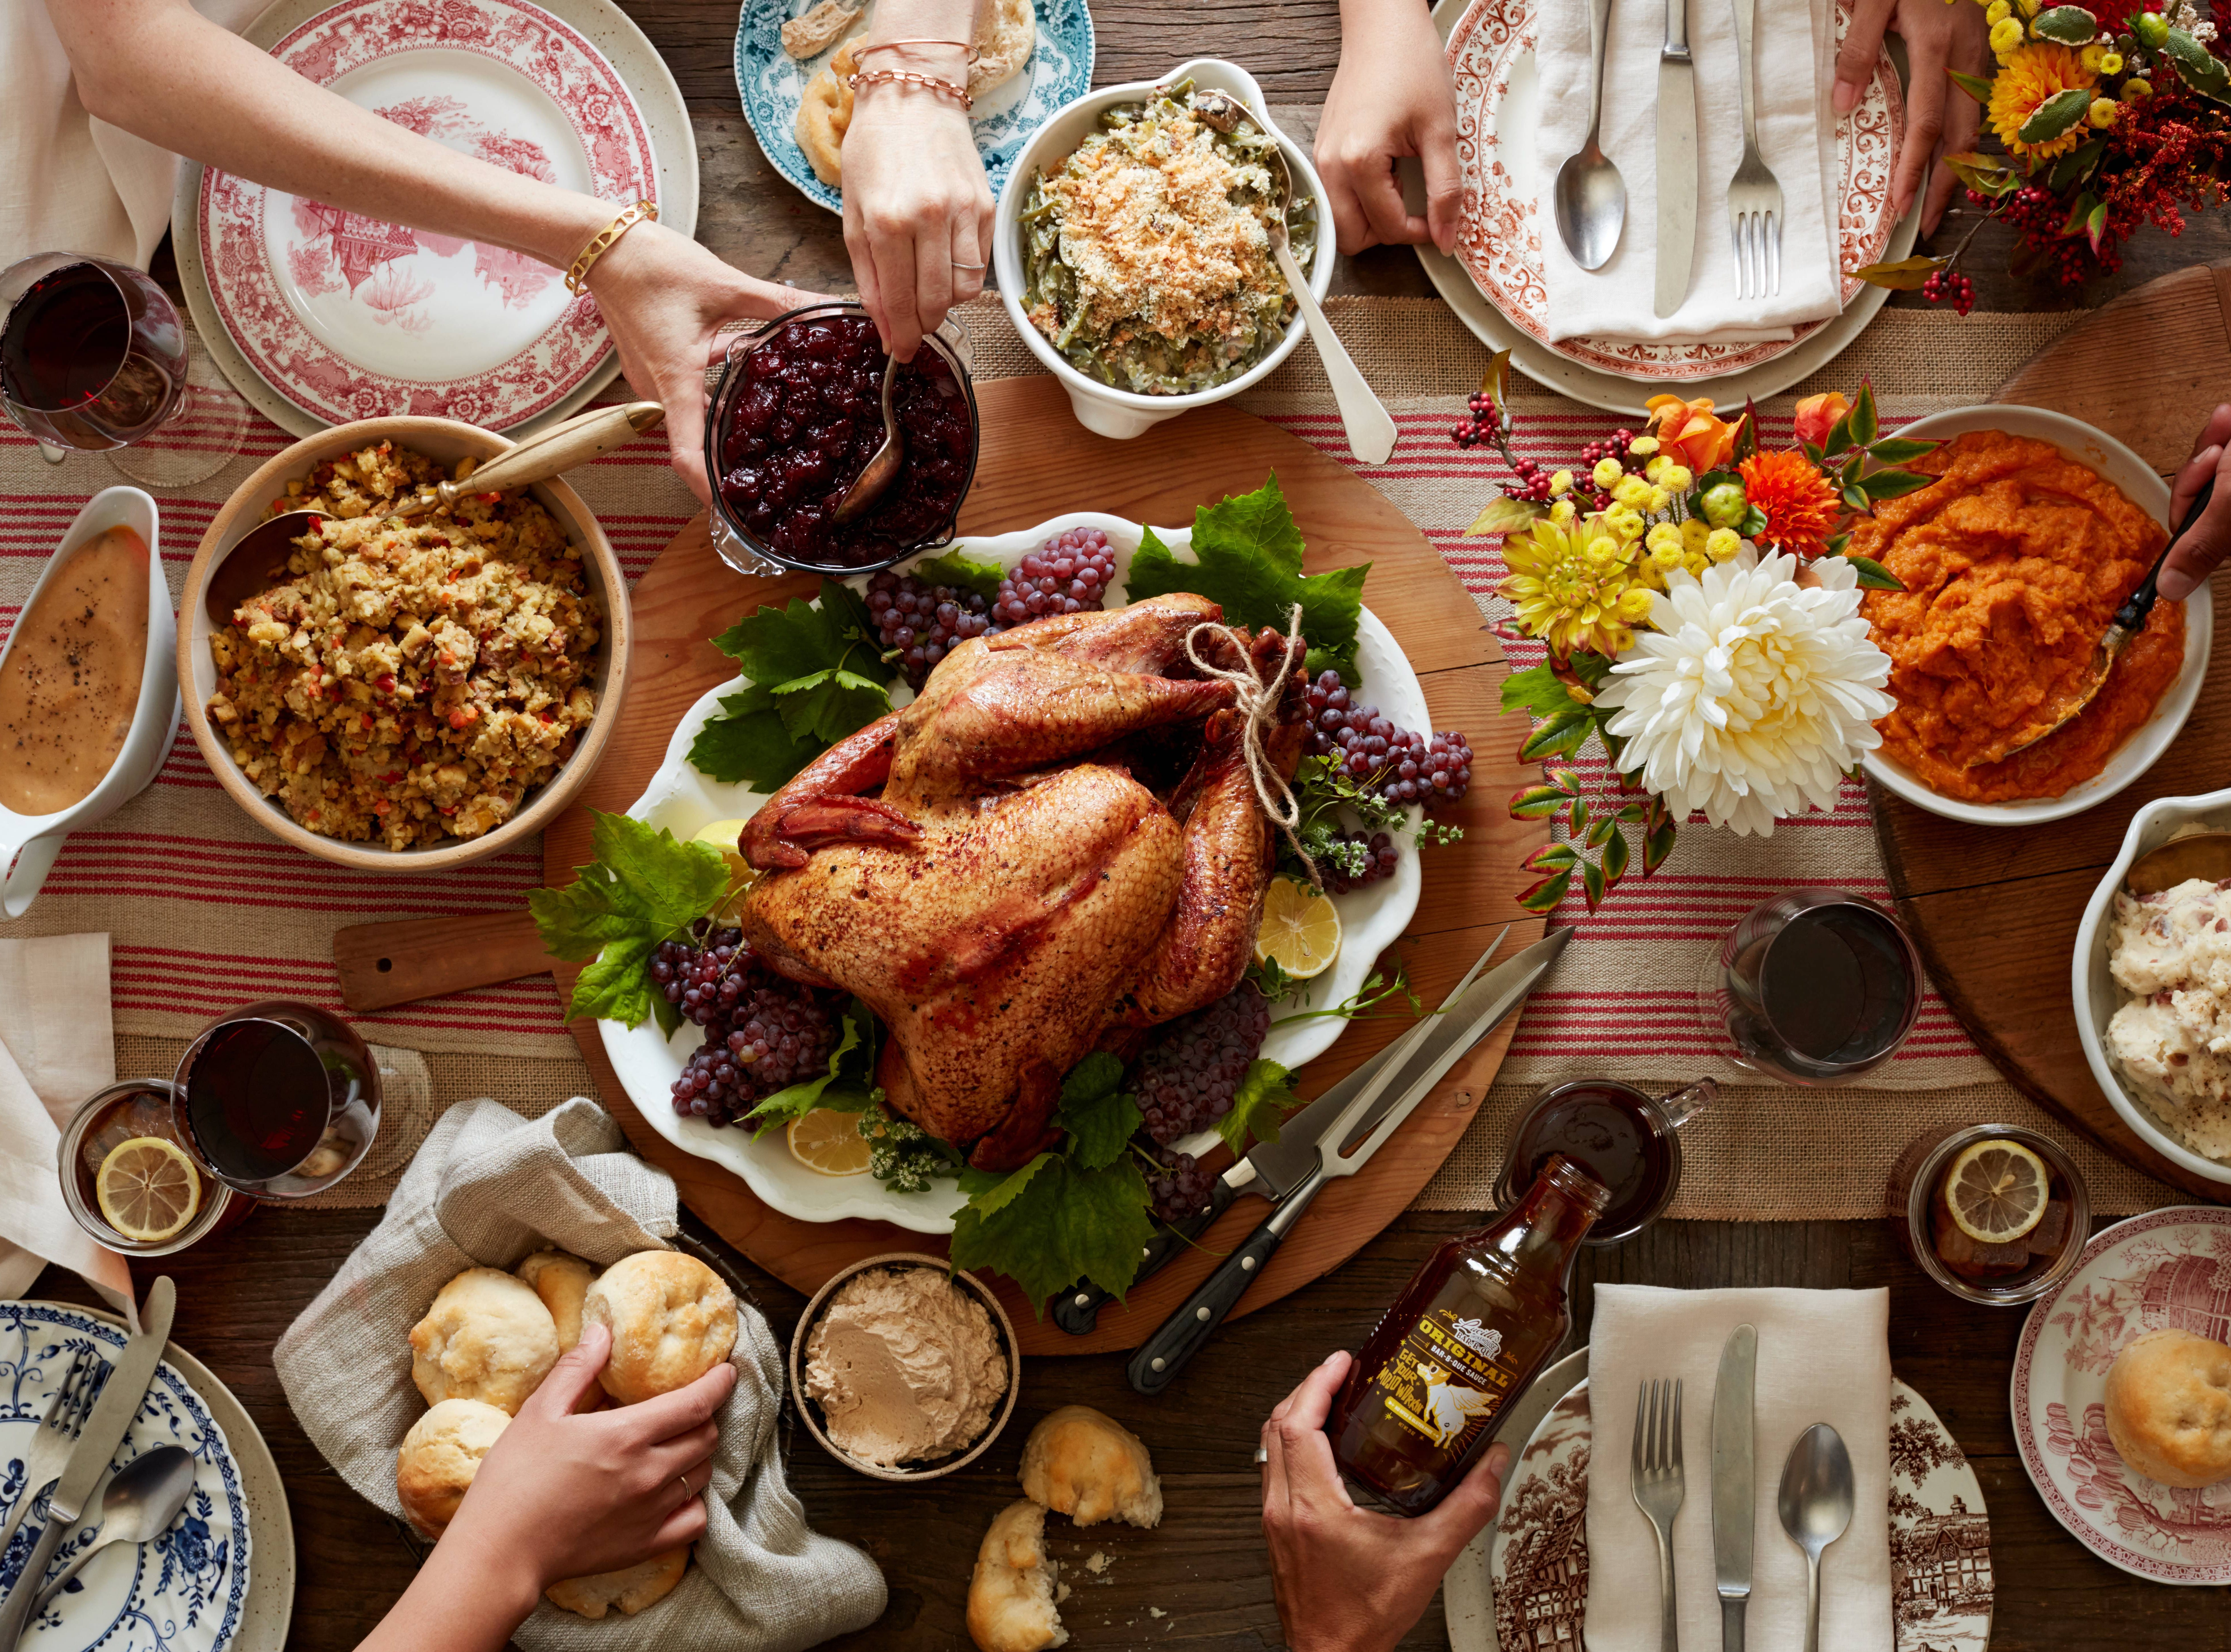 The Thanksgiving dinner at Lucille's Smokehouse & BBQ.